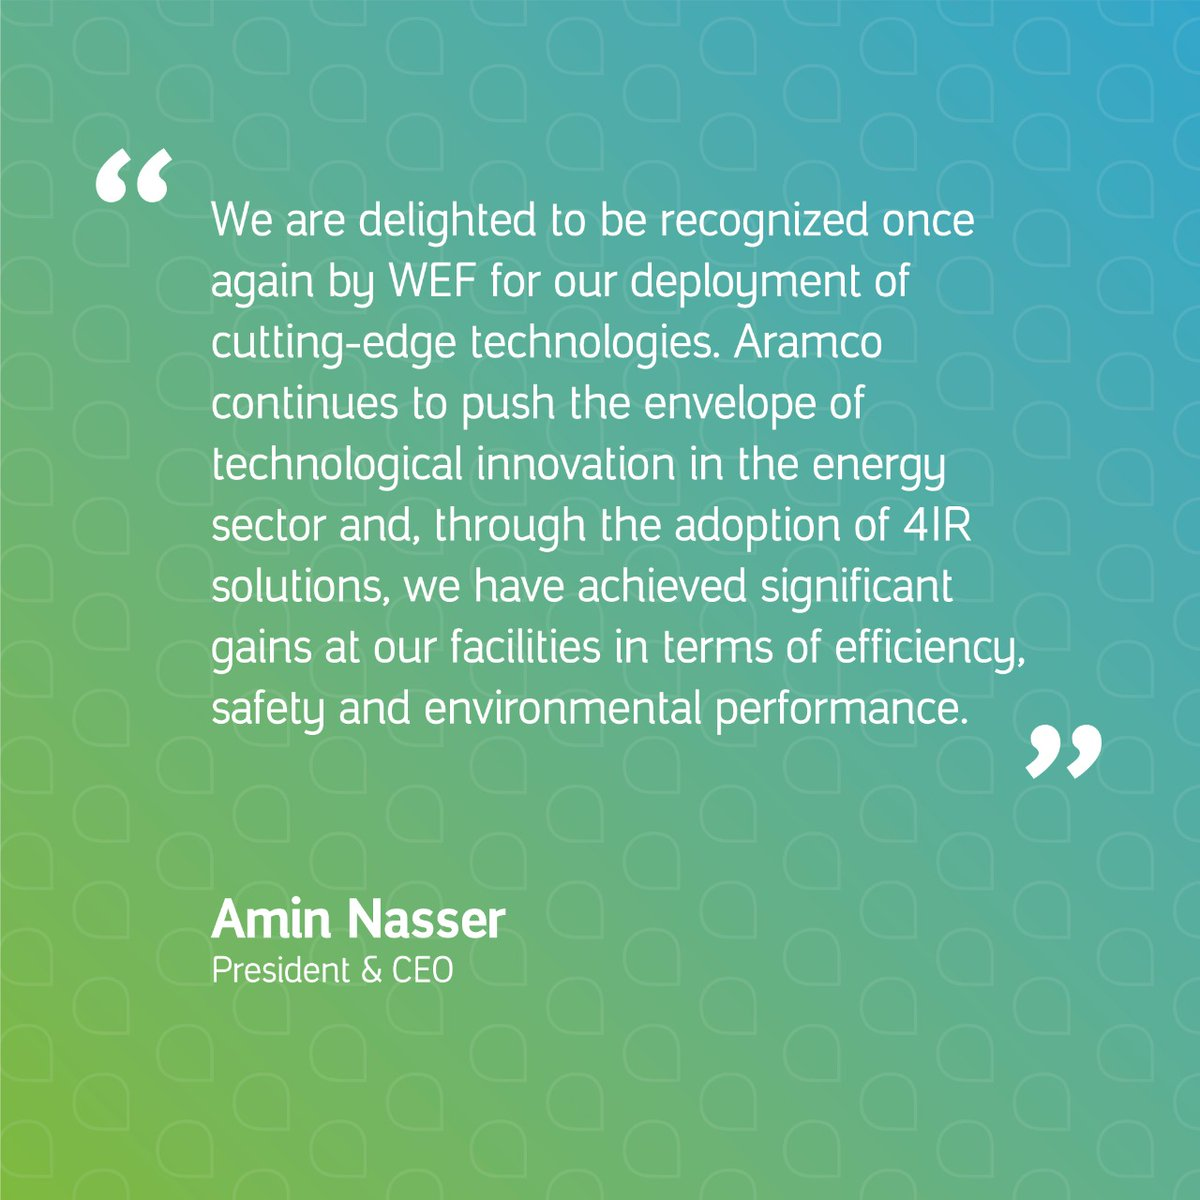 Khurais becomes second #Aramco facility to join prestigious WEF Global Lighthouse Network.  Learn more:  https://t.co/IacEhpl4qZ https://t.co/YaeyVXebUV